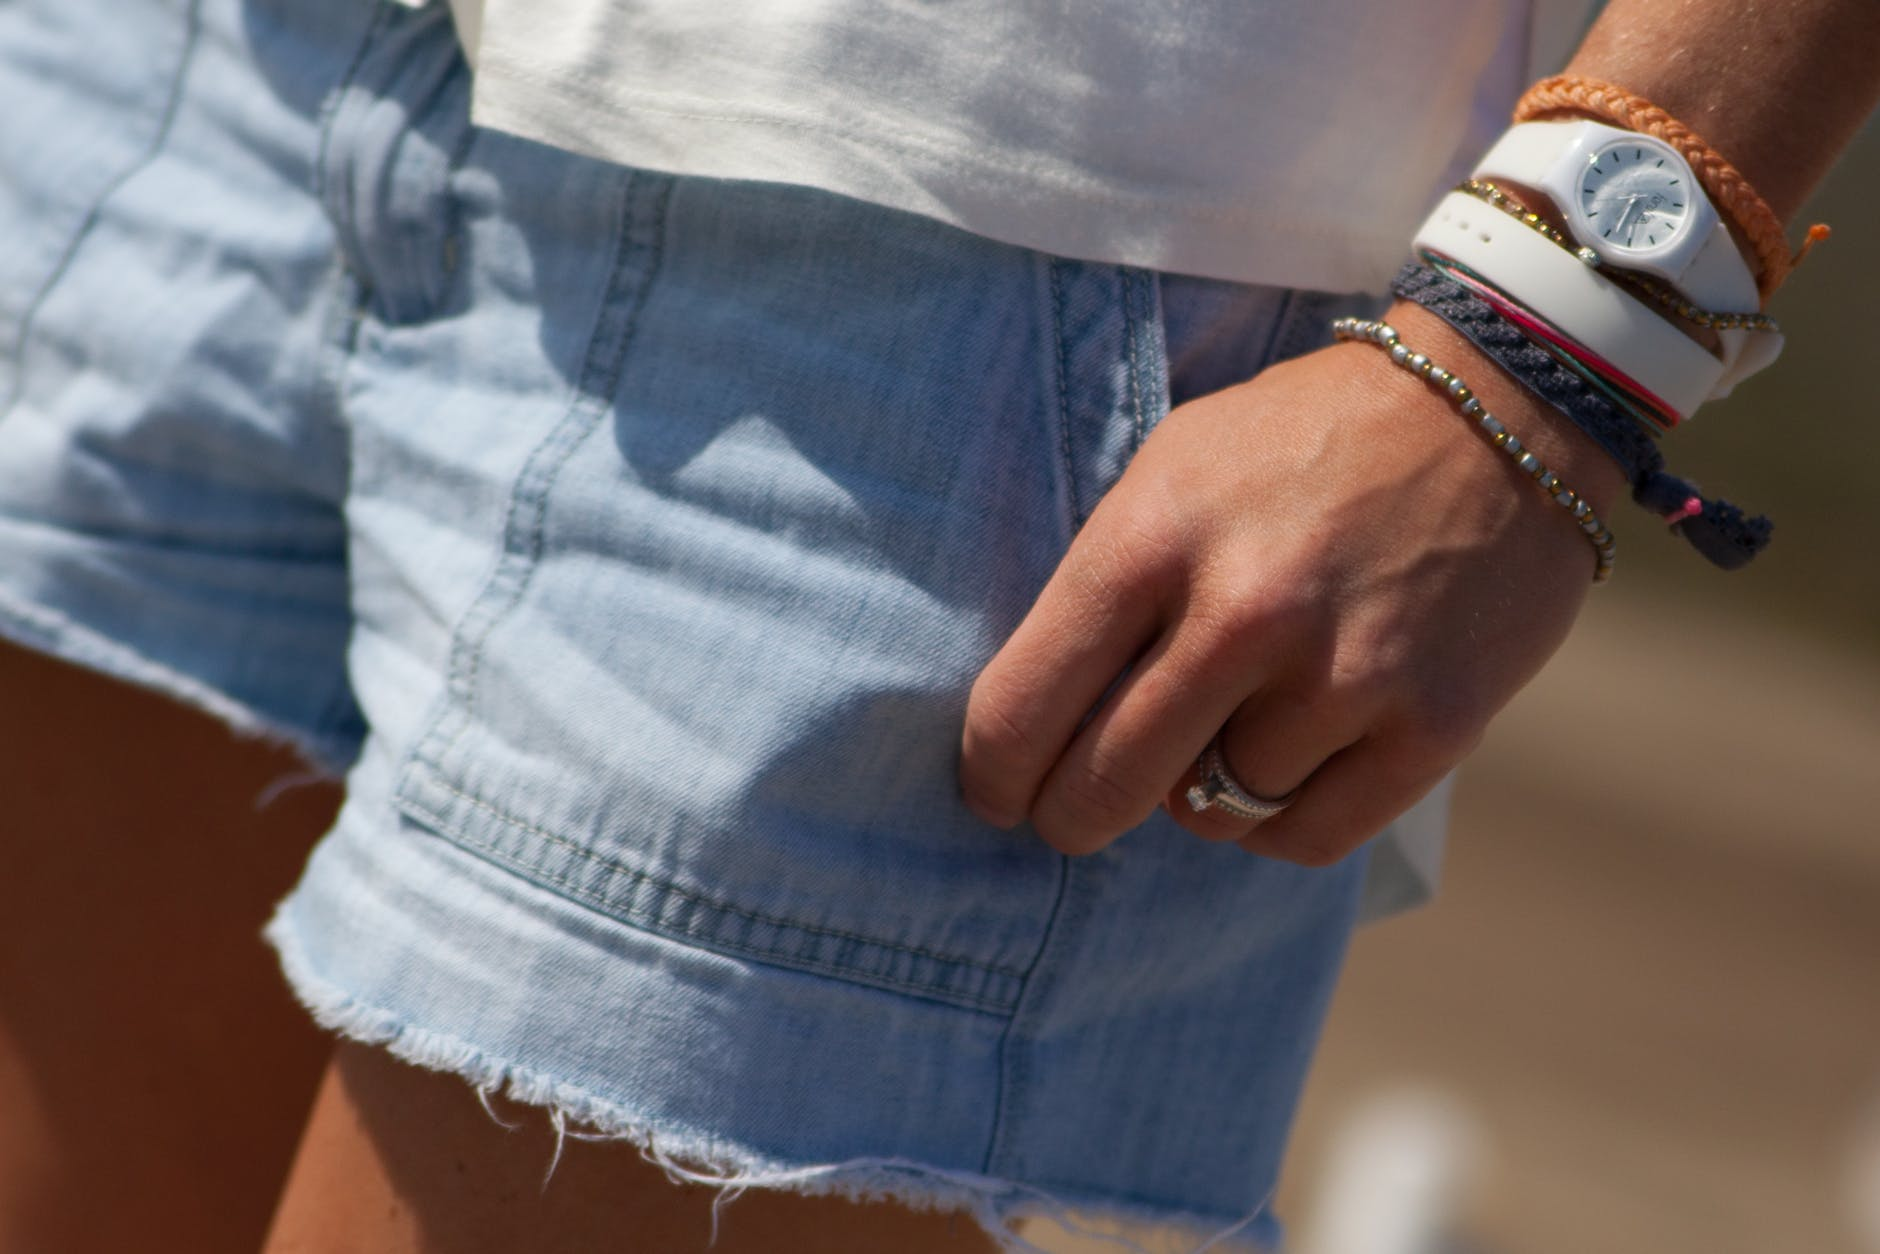 fashion person shorts woman